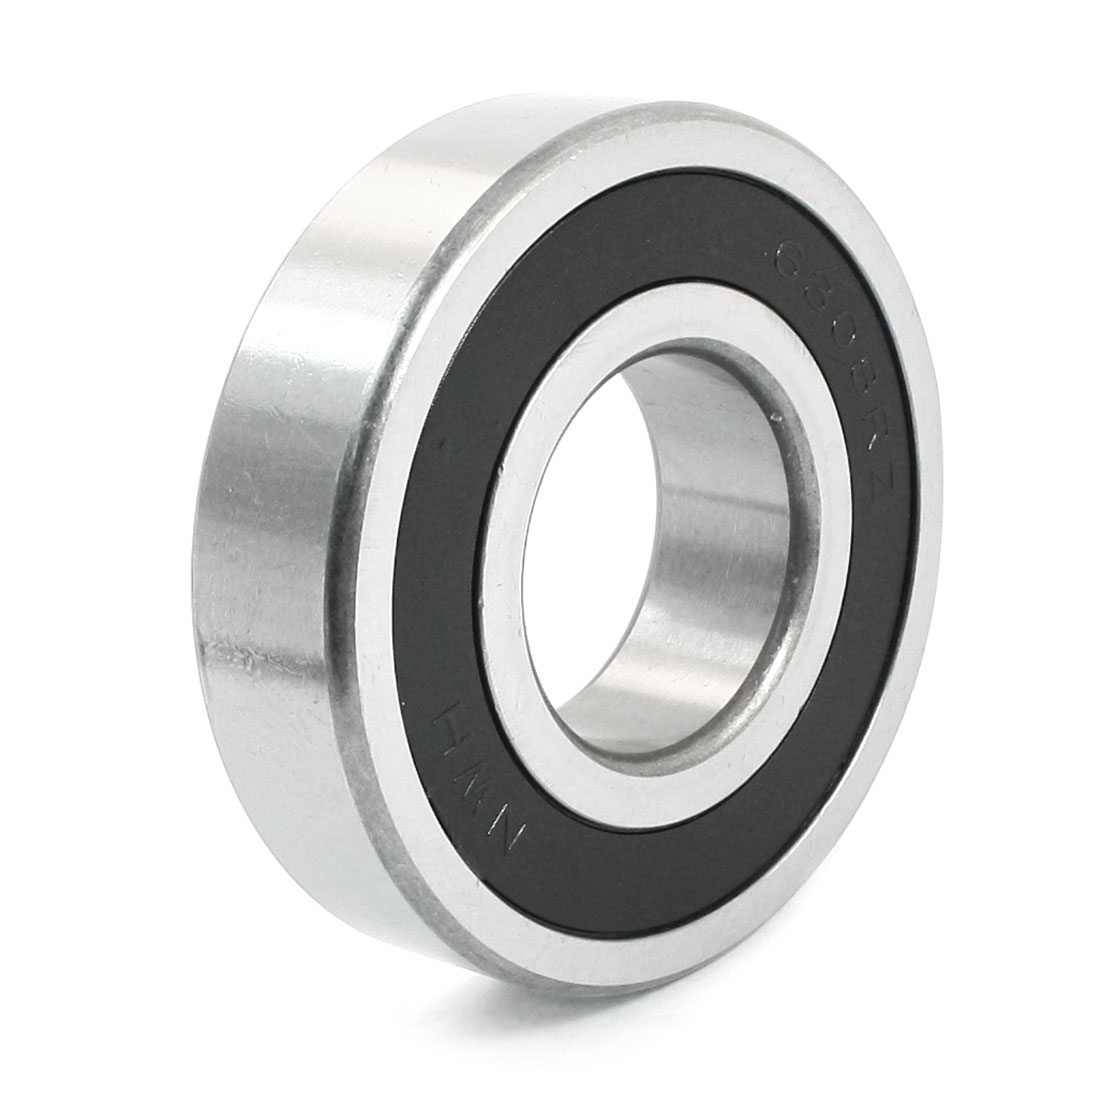 6308-2RS 40mmx90mmx23mm Rubber Sealed Deep Groove Radial Ball Bearing